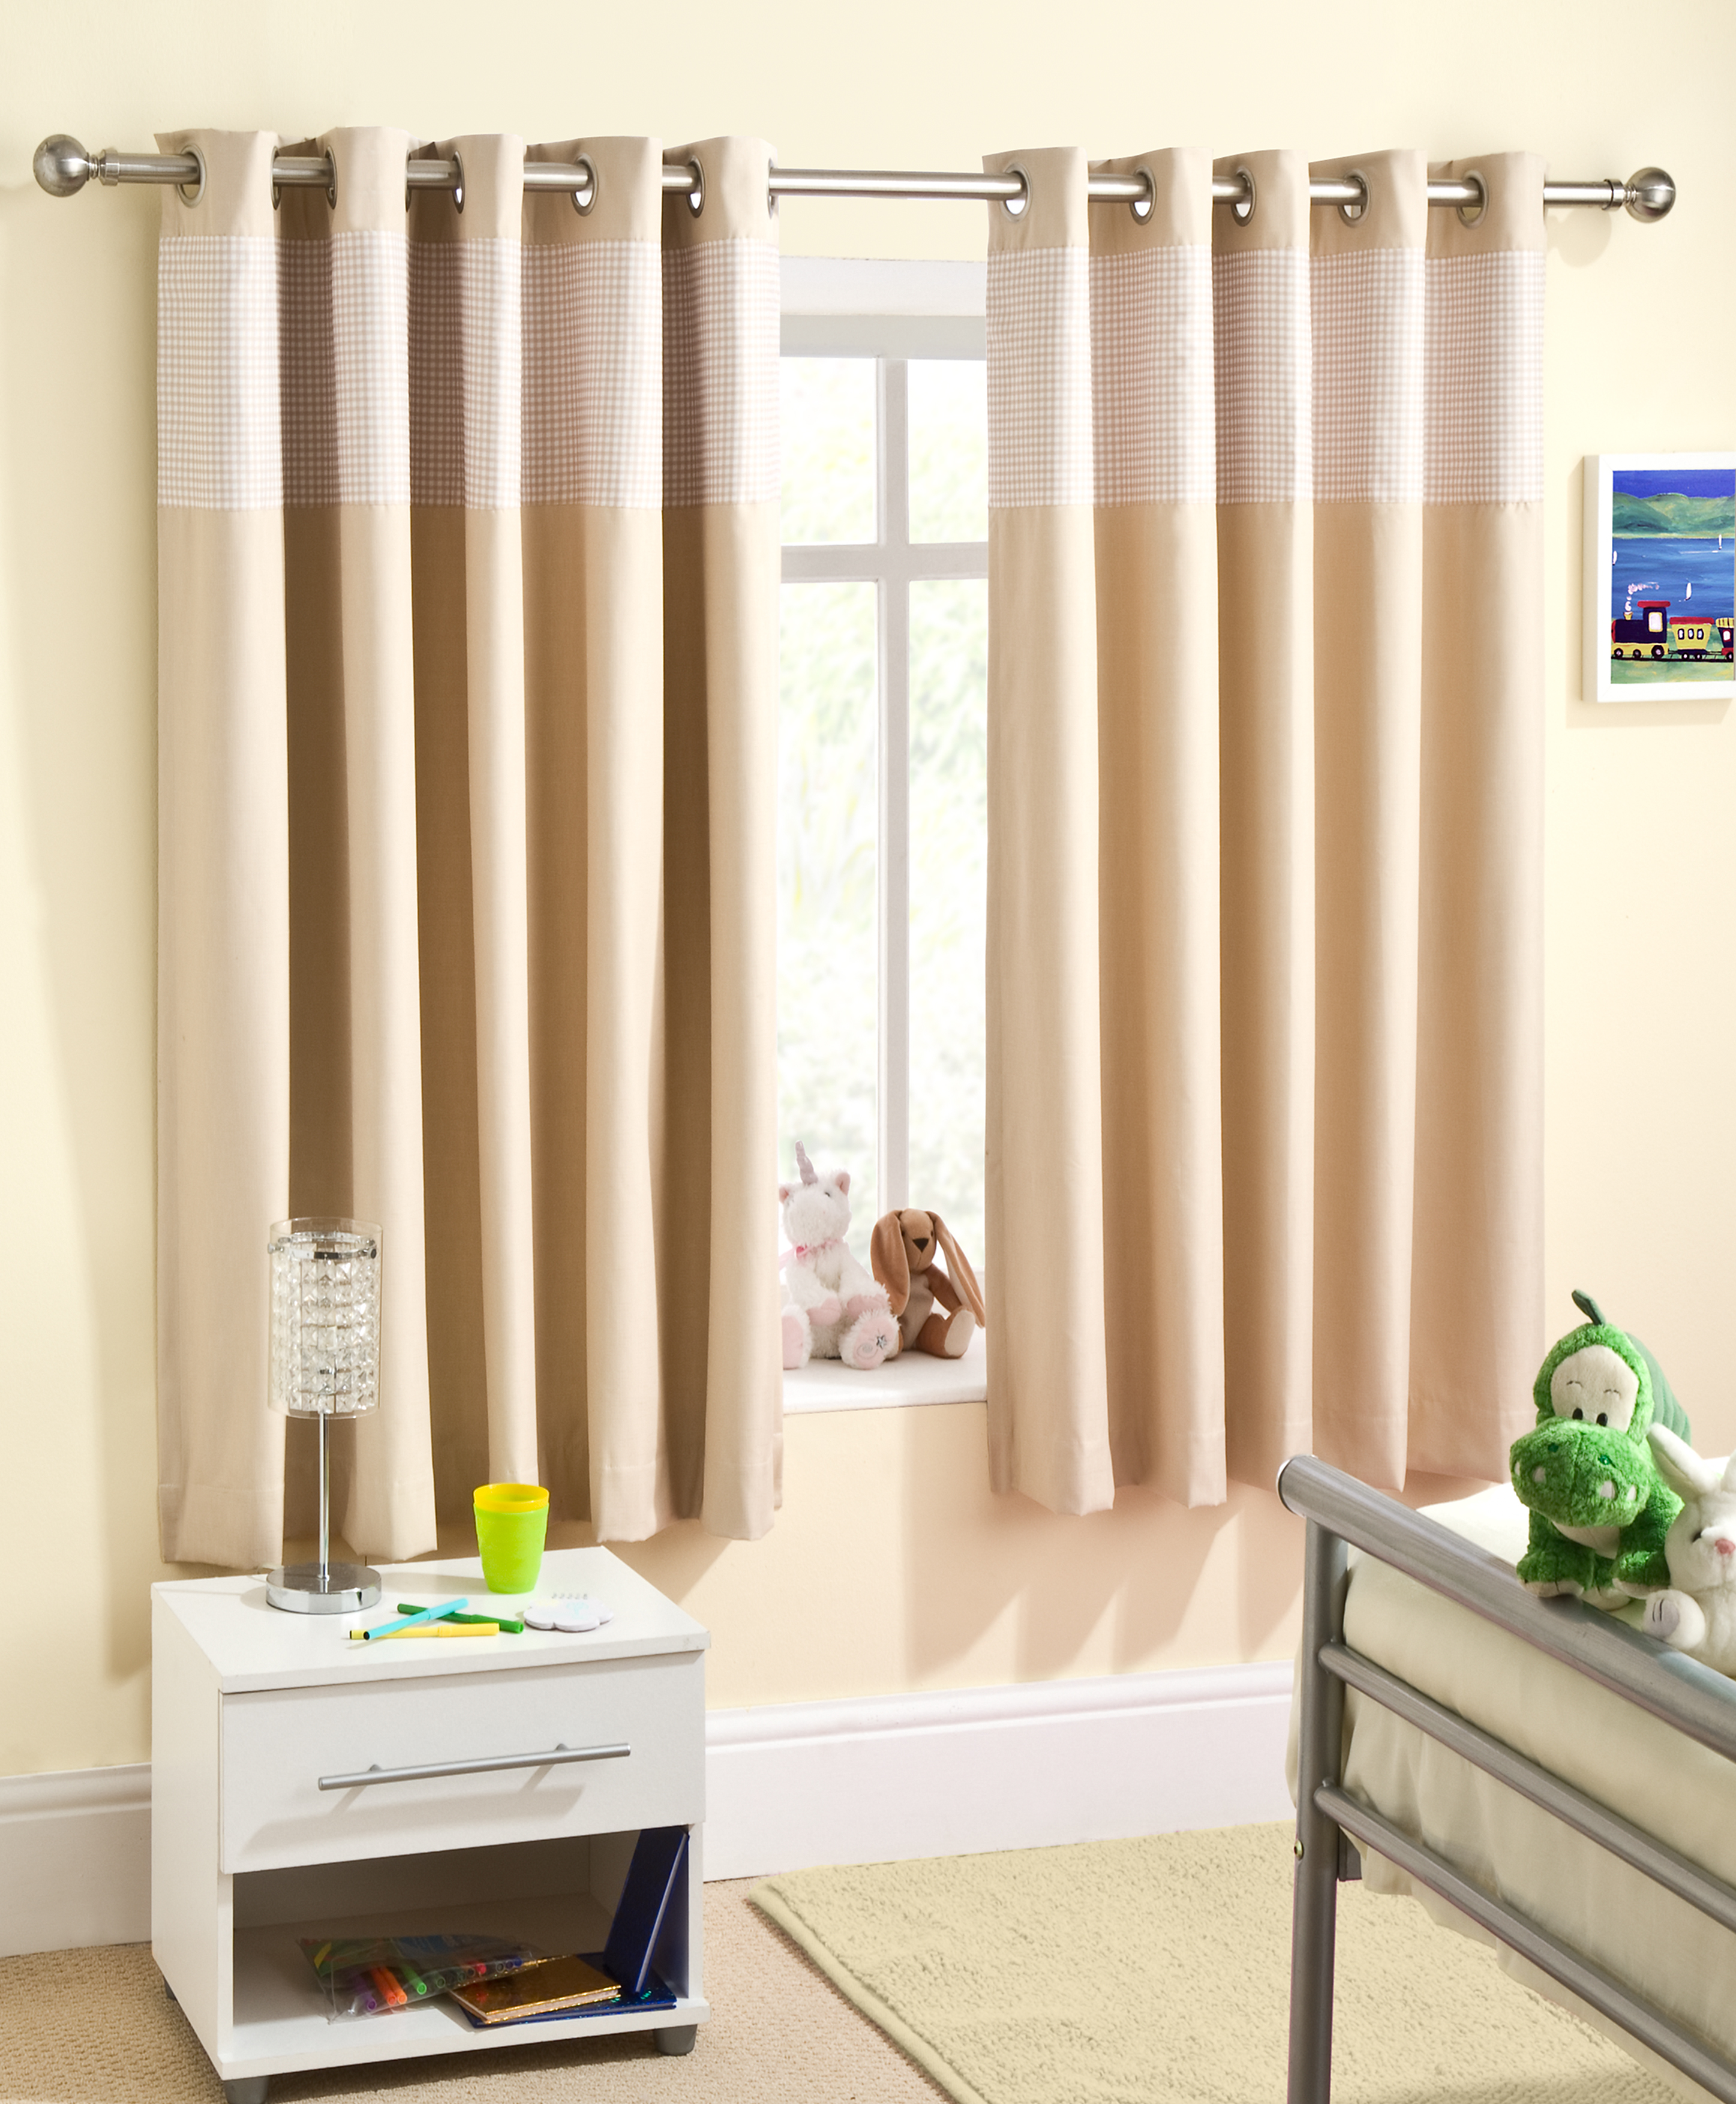 Childrens Gingham Curtain Thermal Blockout Eyelet Ring Top Curtains Kids Nursery